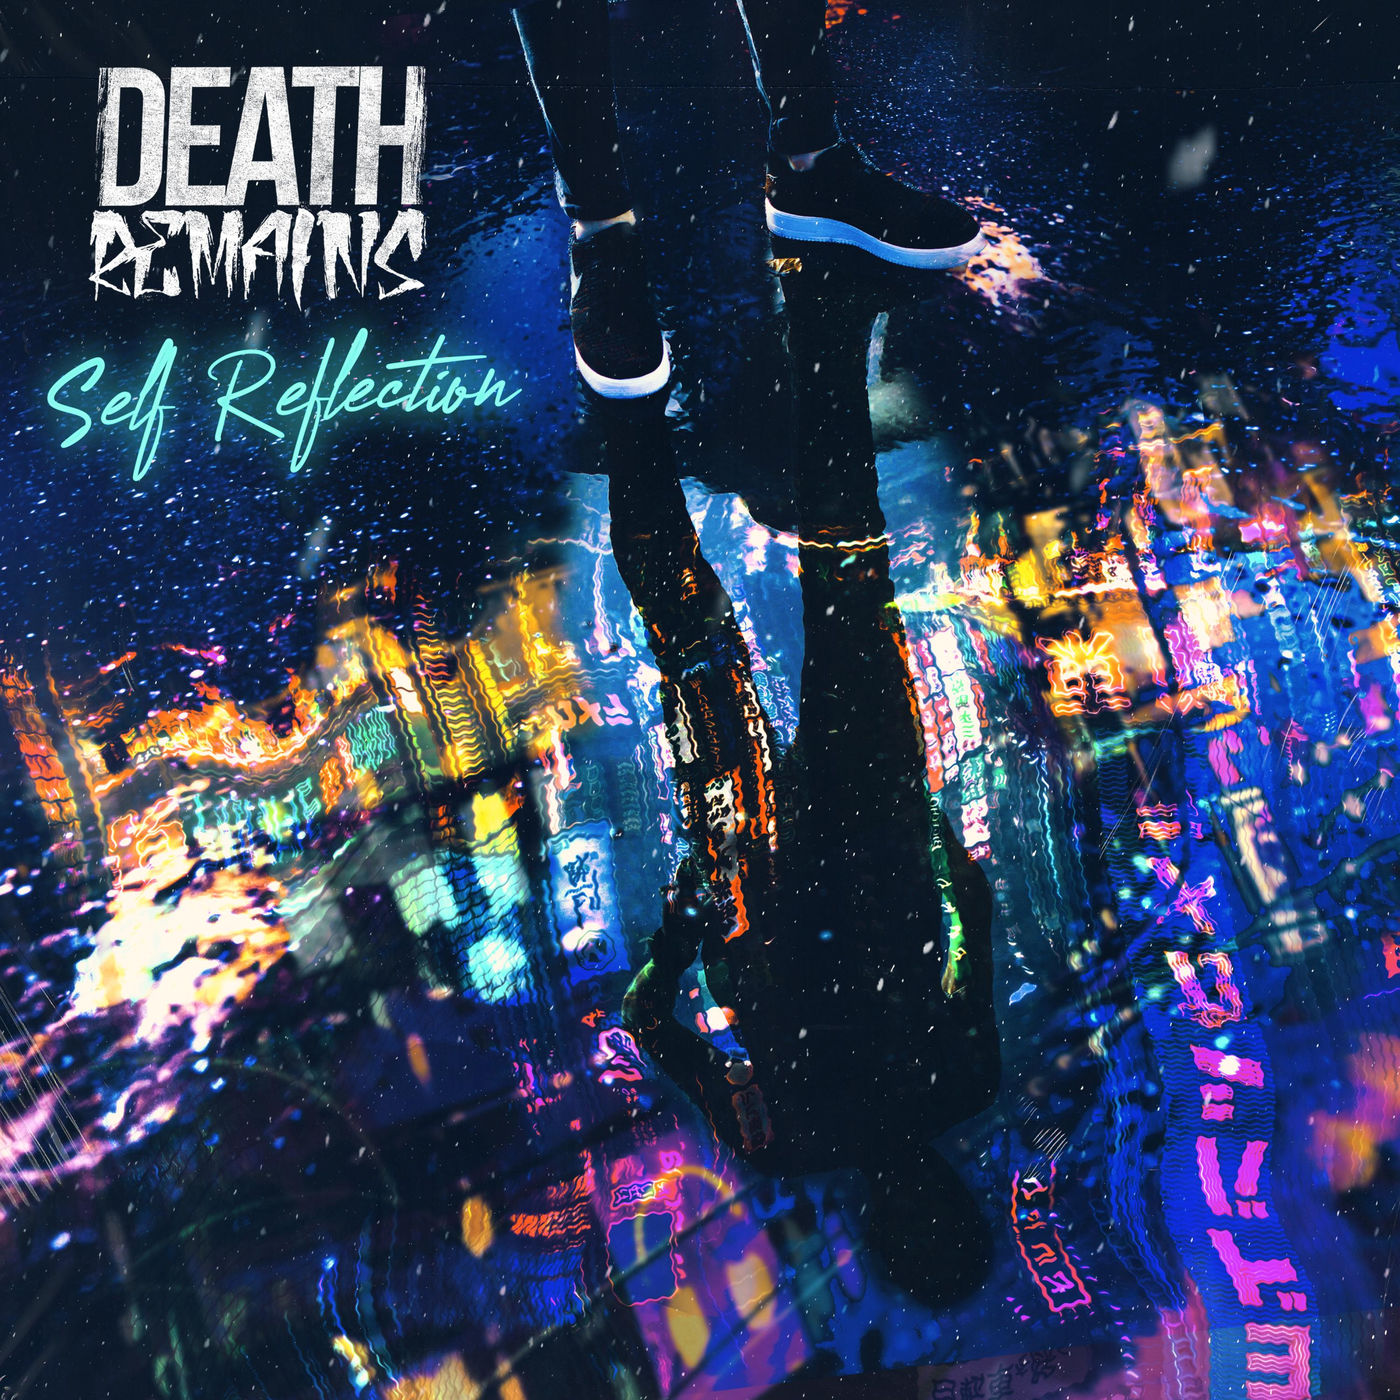 Death Remains - Self Reflection [single] (2020)